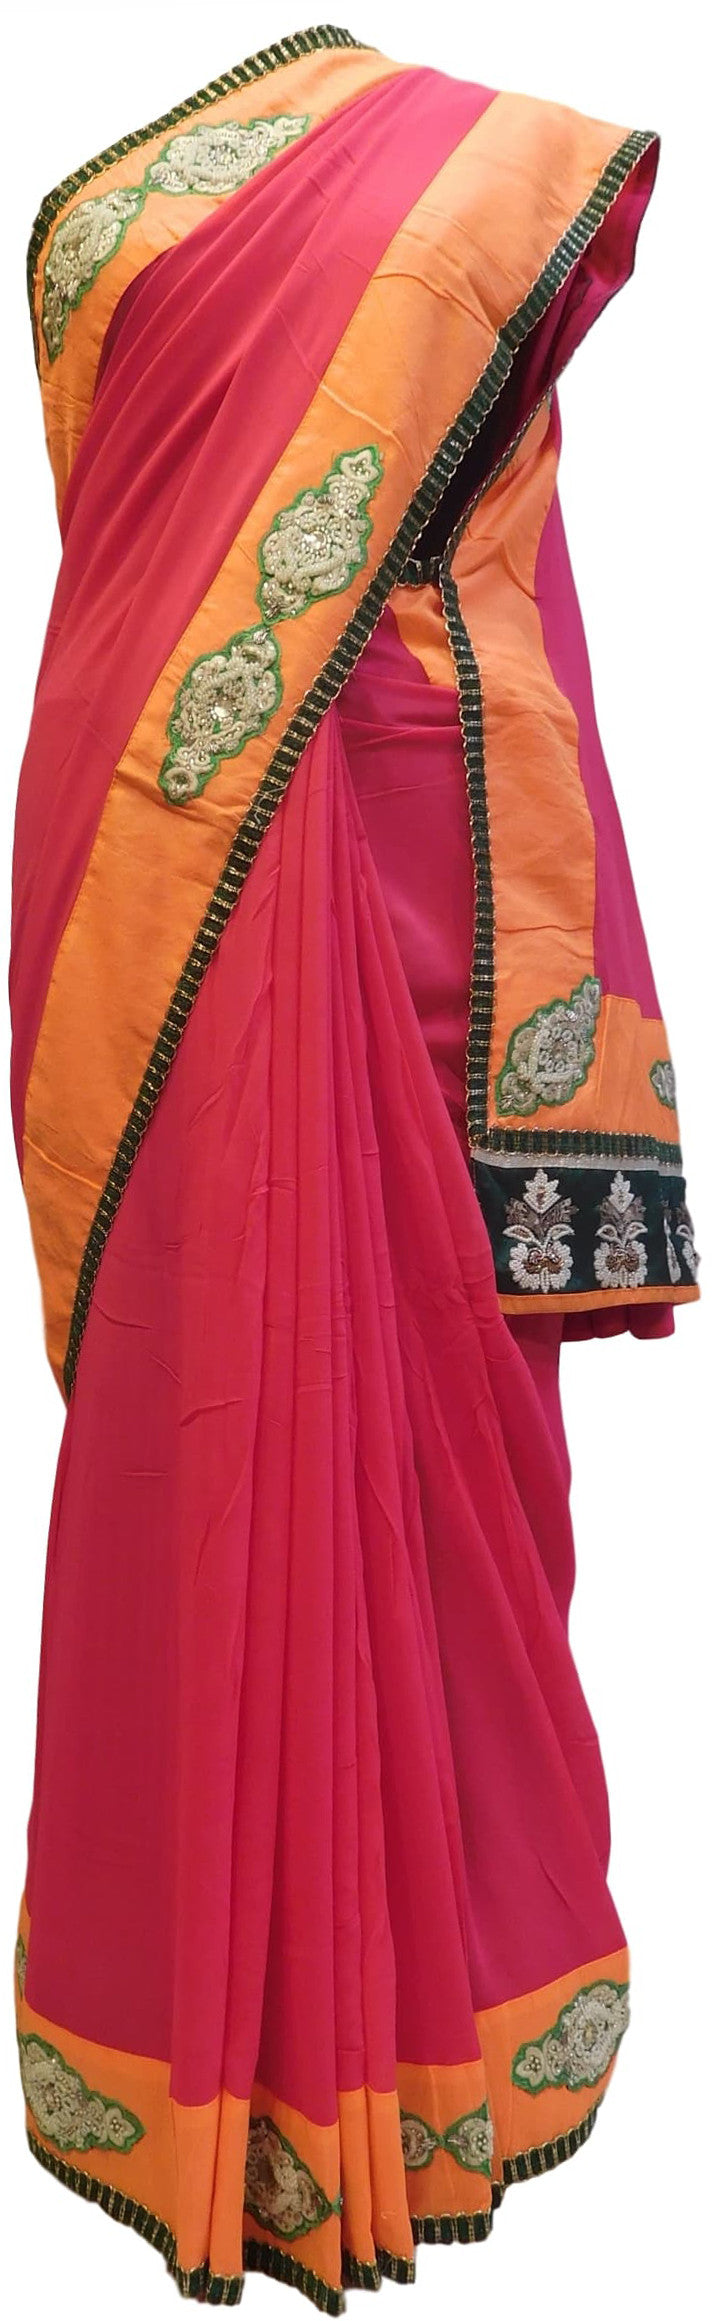 Red & Orange Designer Georgette (Viscos) Hand Embroidery Work Saree Sari